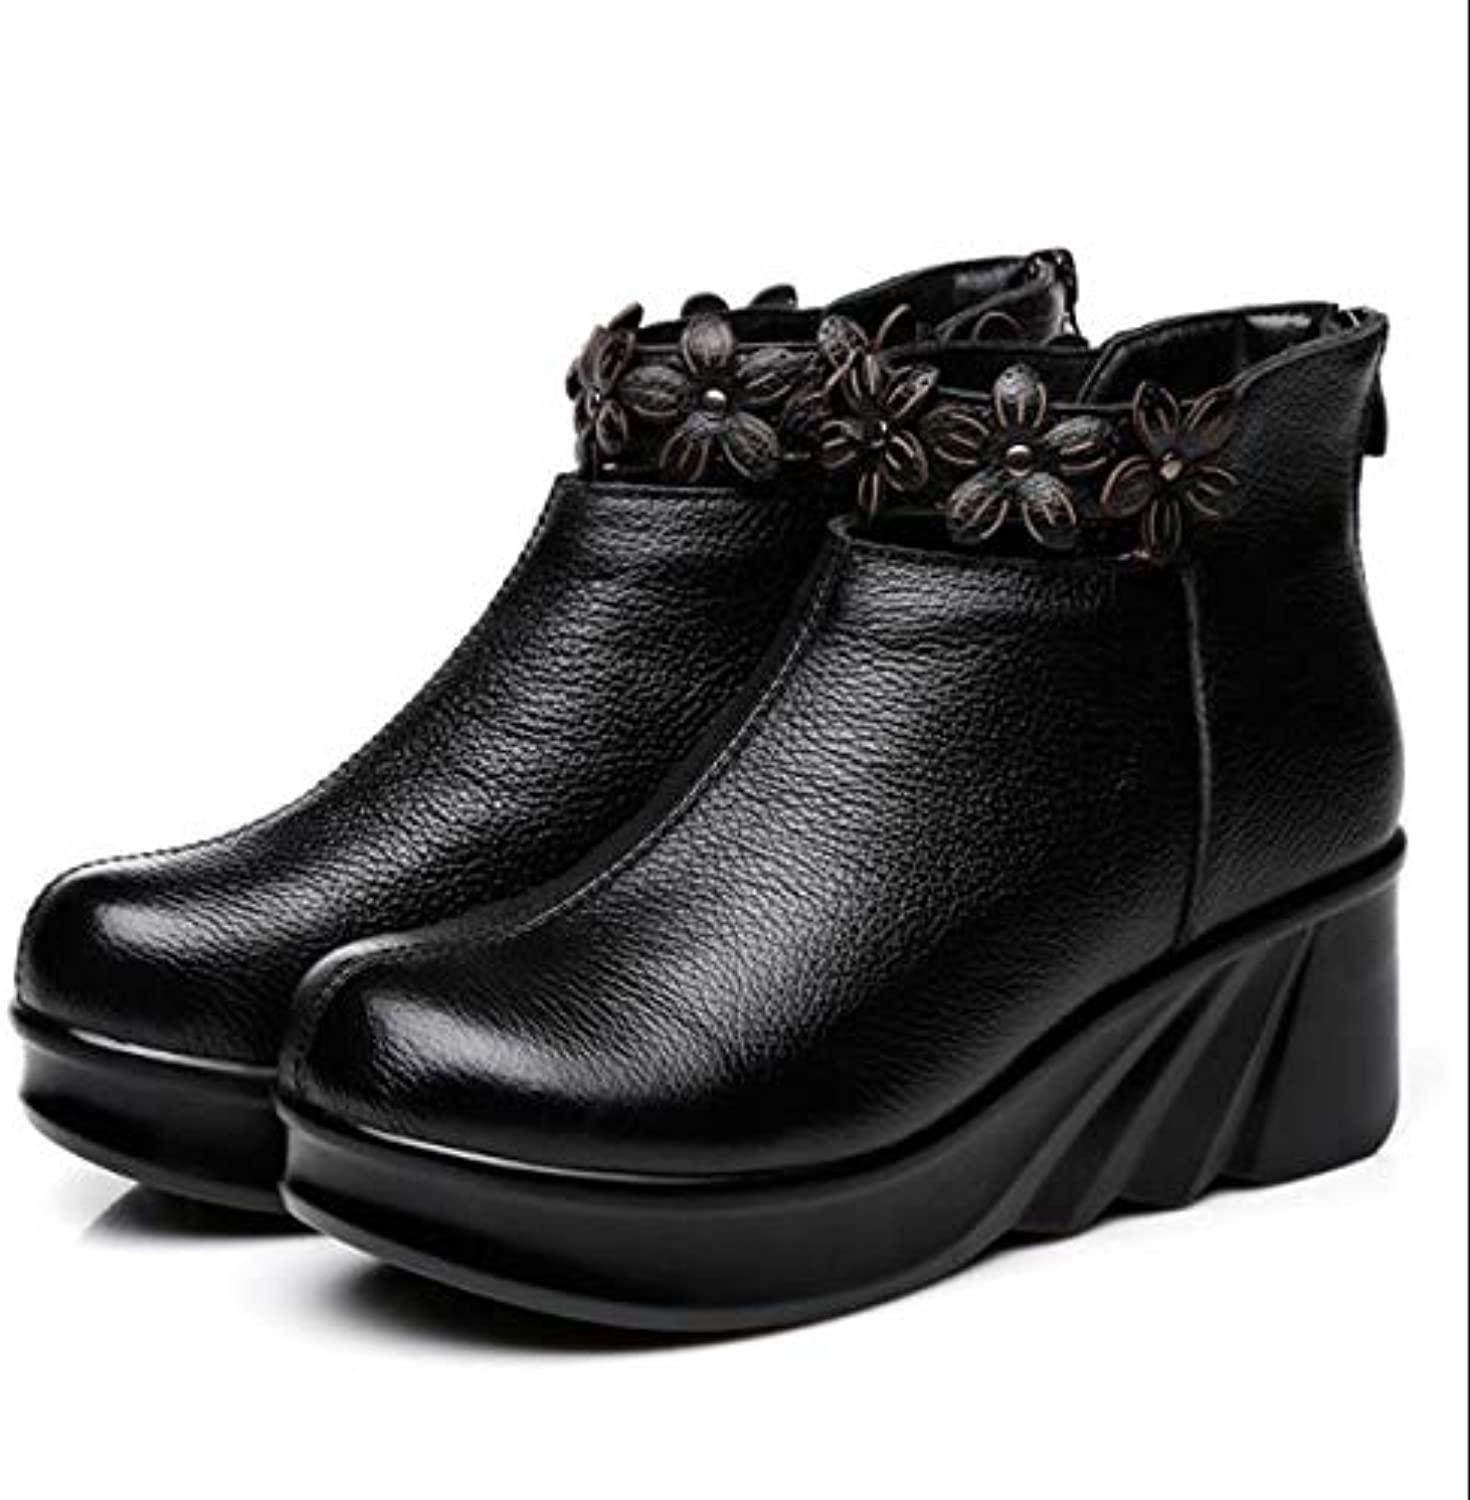 Fumak Boots Women Comfortable Autumn Genuine Leather Ankle Boots for Women Soft Martin Wedges Platform shoes Ladies